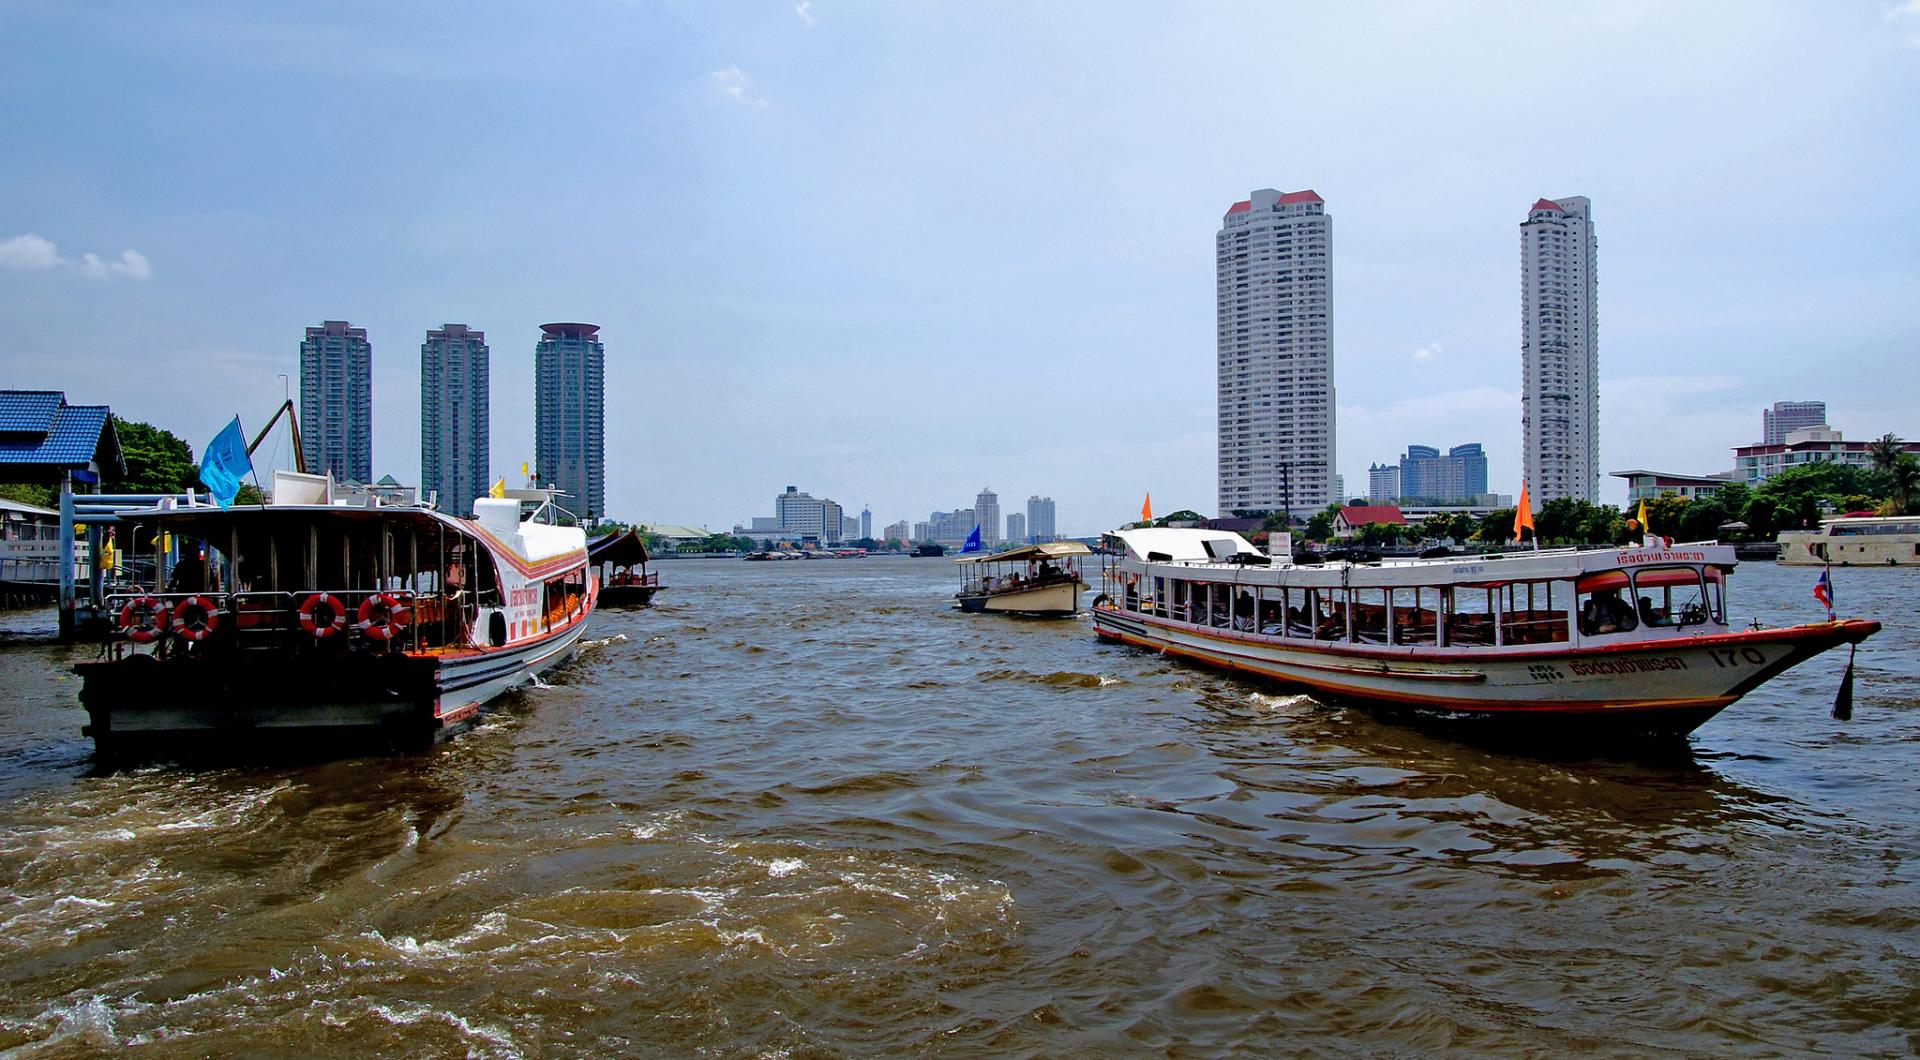 A guide to the weekend in Bangkok - Rachel Nicole UK Travel Blogger